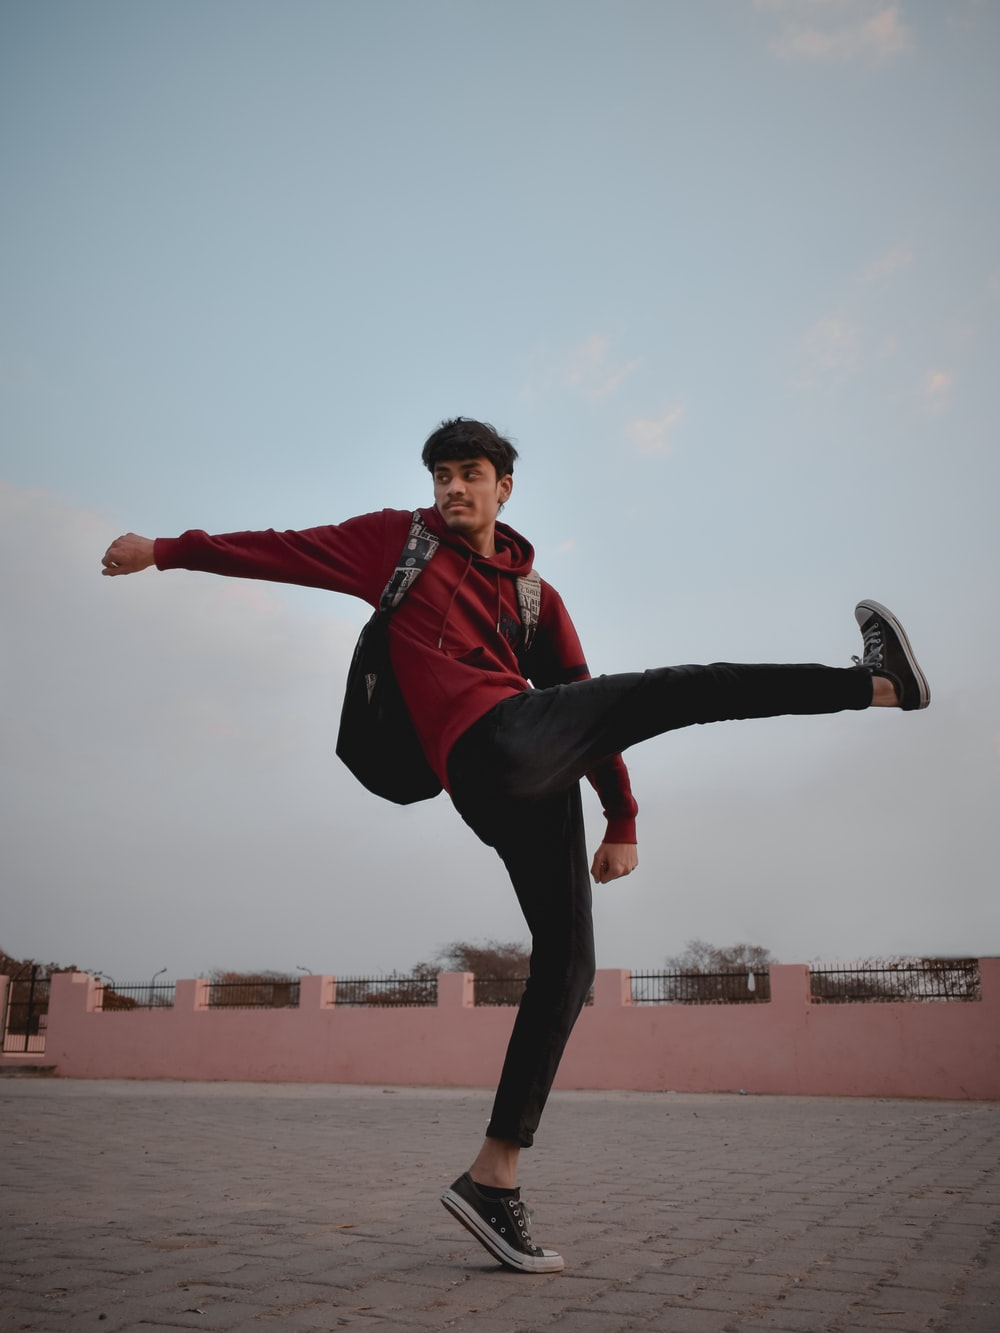 man in red and black jacket and black pants jumping on mid air during daytime